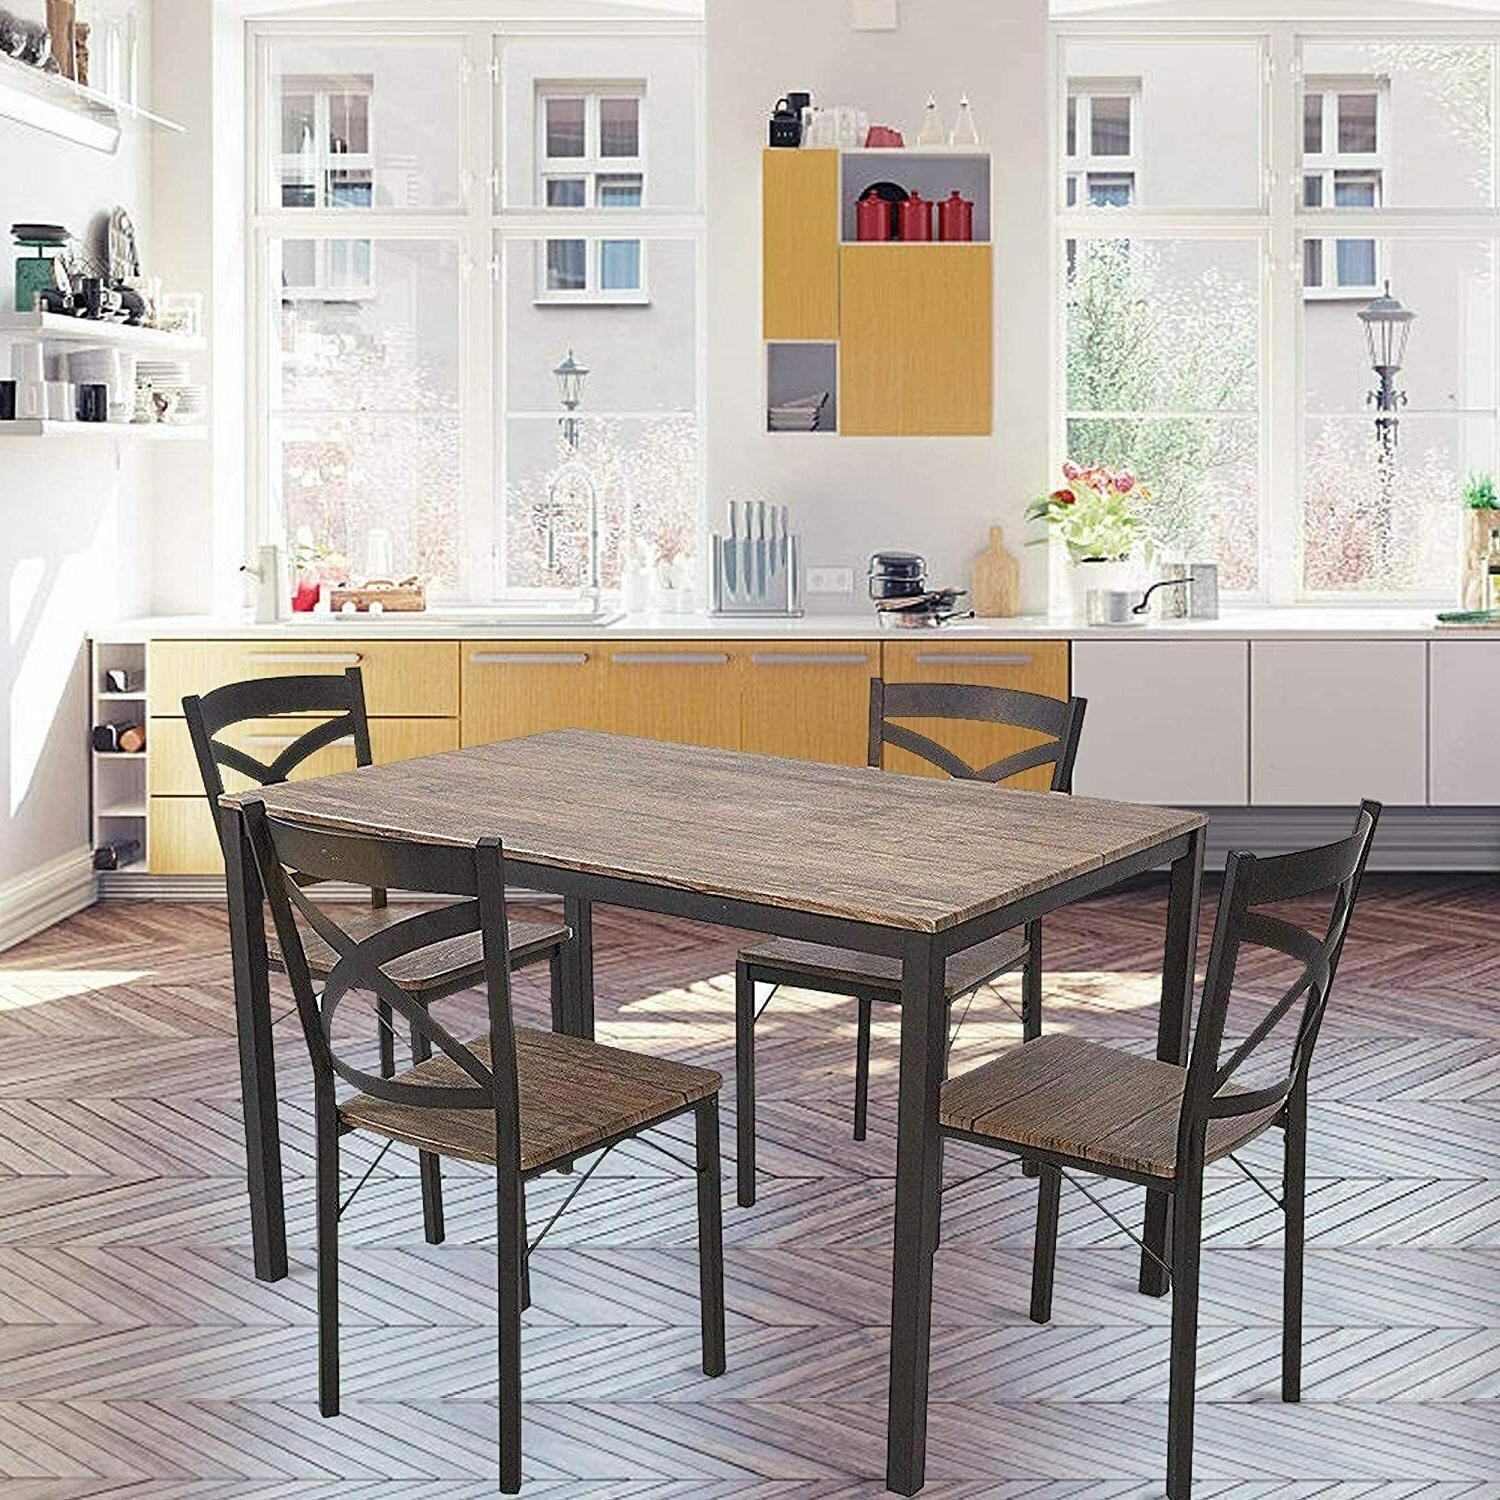 5-Piece Industrial Style Kitchen Table and